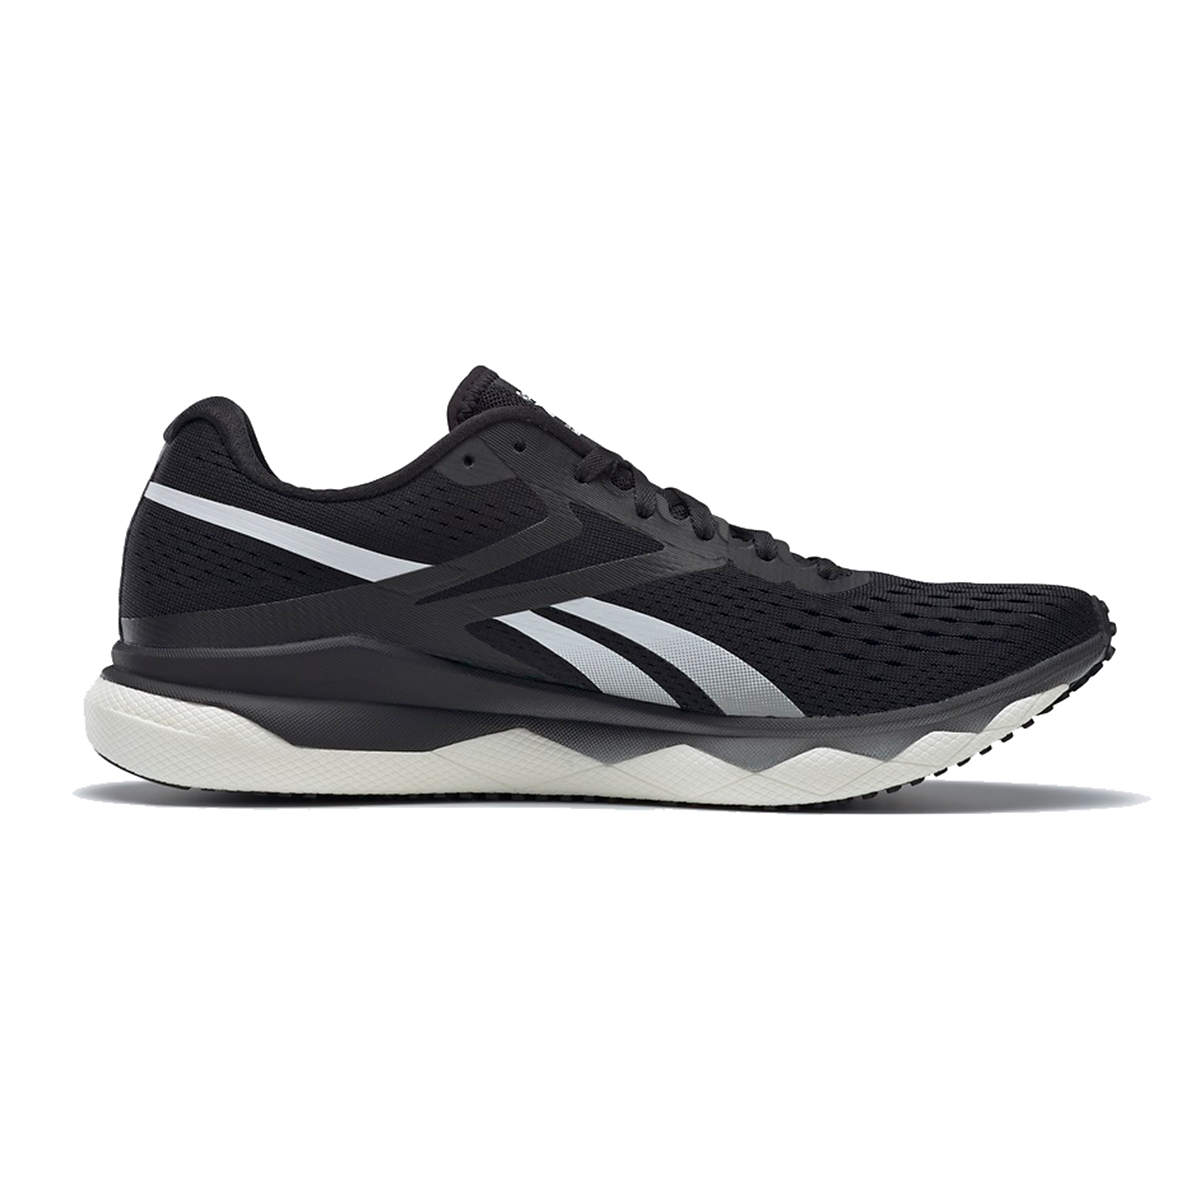 Men's Reebok Floatride Run Fast 2.0 Running Shoe - Color: Black/Pure Grey - Size: 7 - Width: Regular, Black/Pure Grey, large, image 1